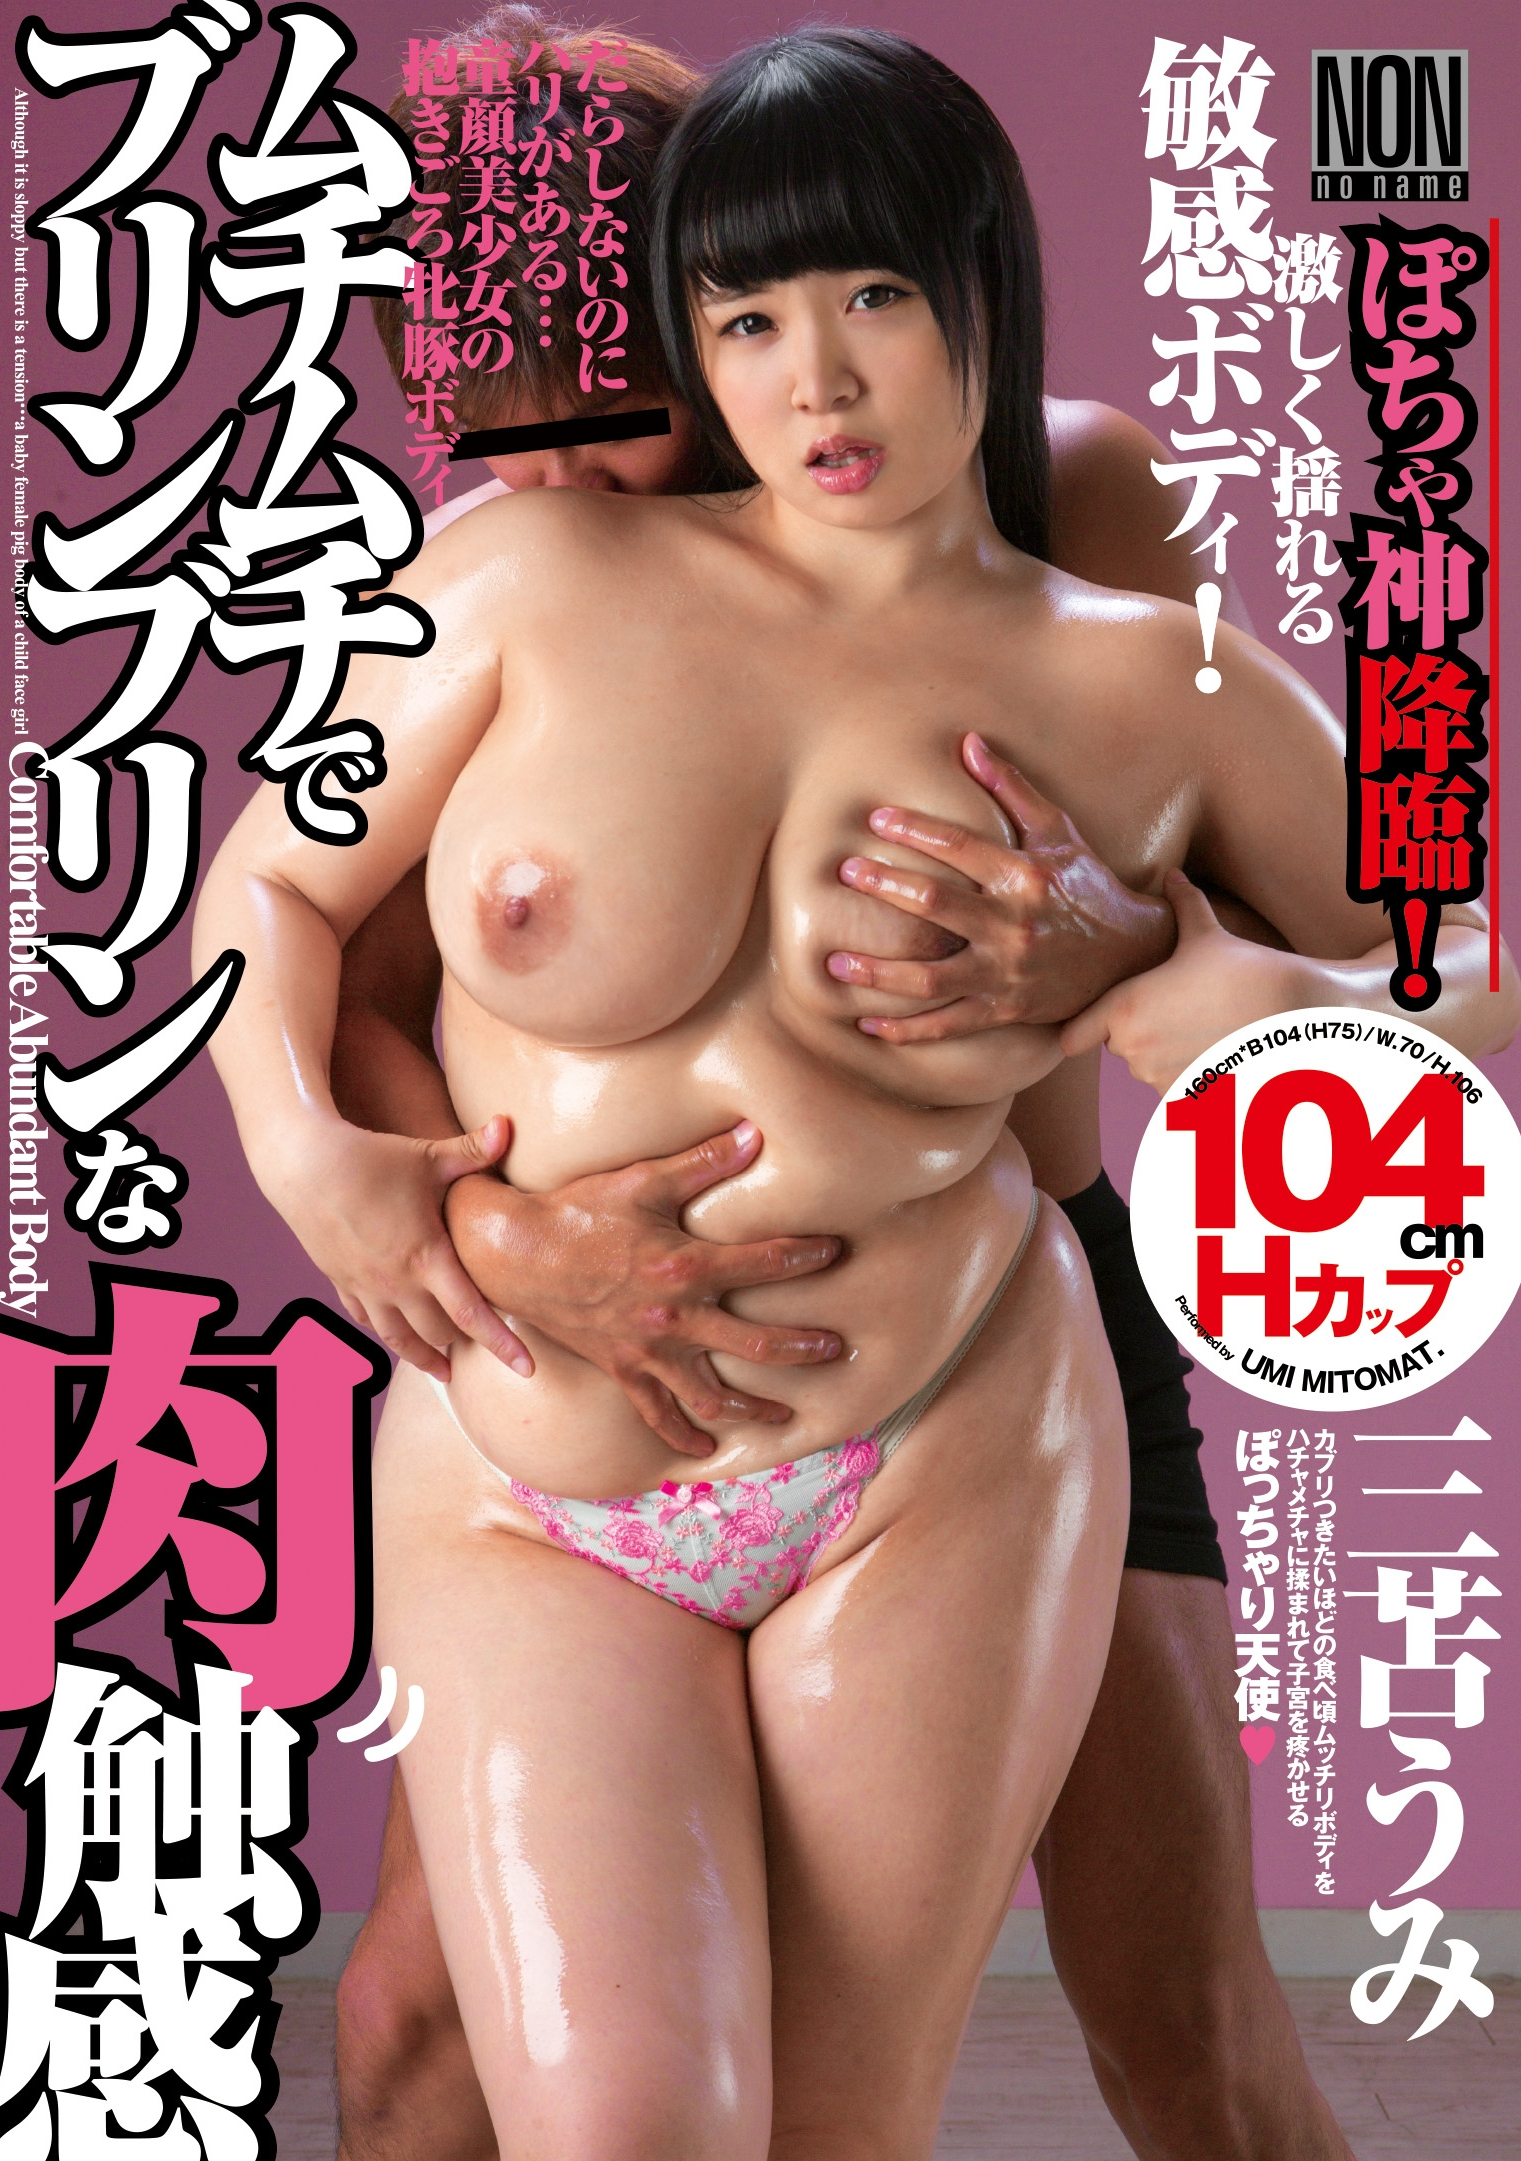 Plump And Tight Meat Touch, Umi Mitoma